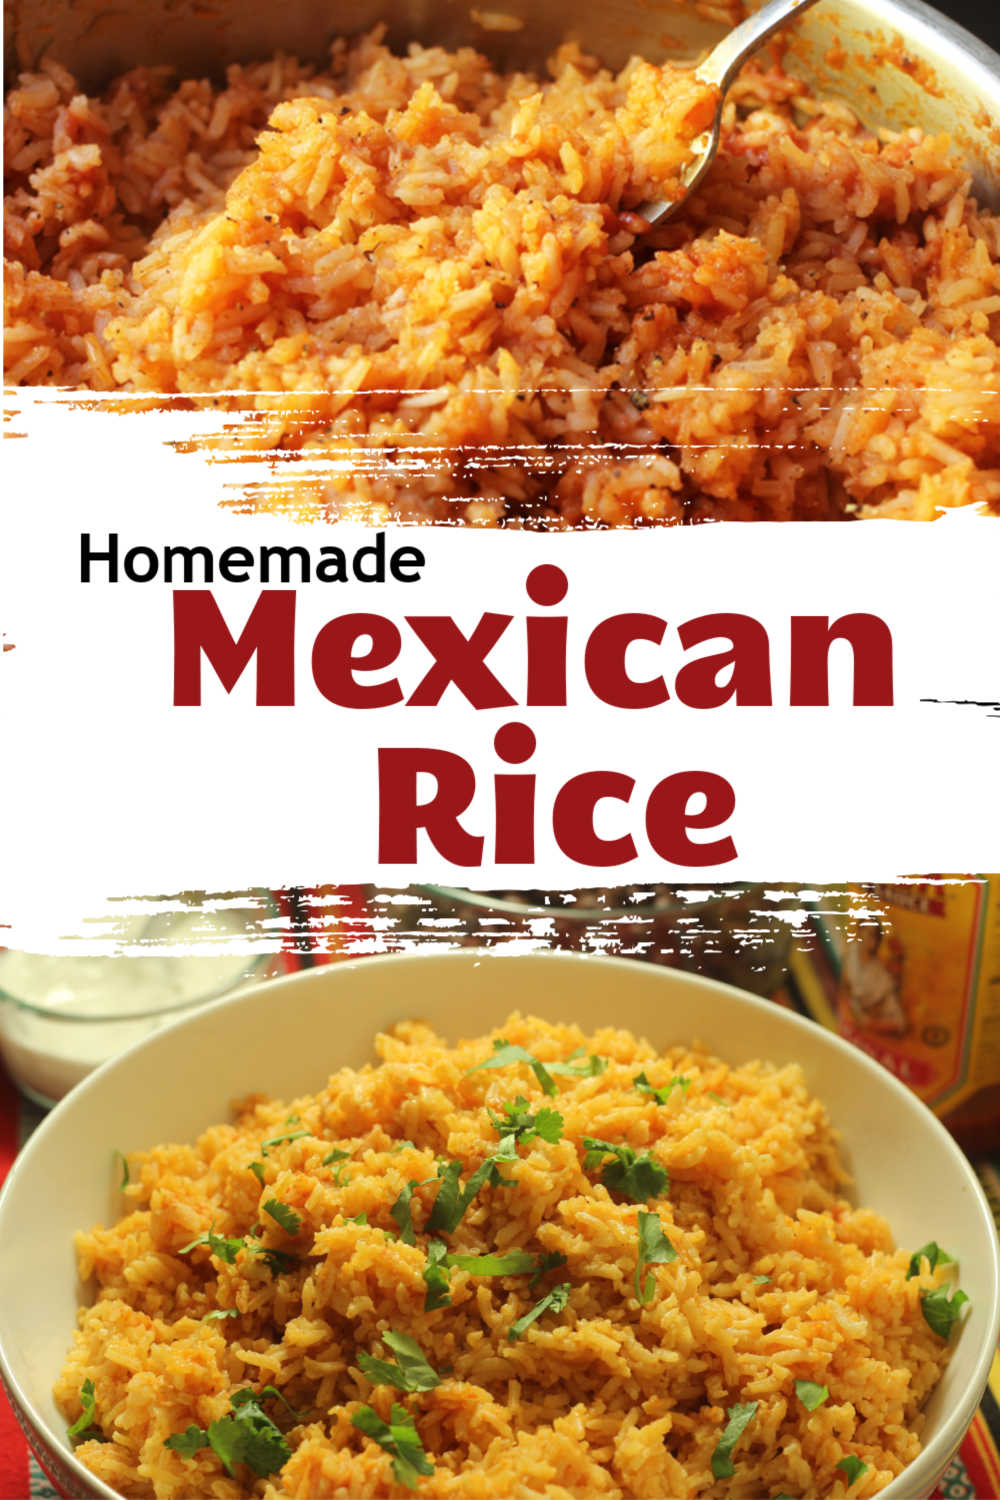 A dish is filled with Spanish rice